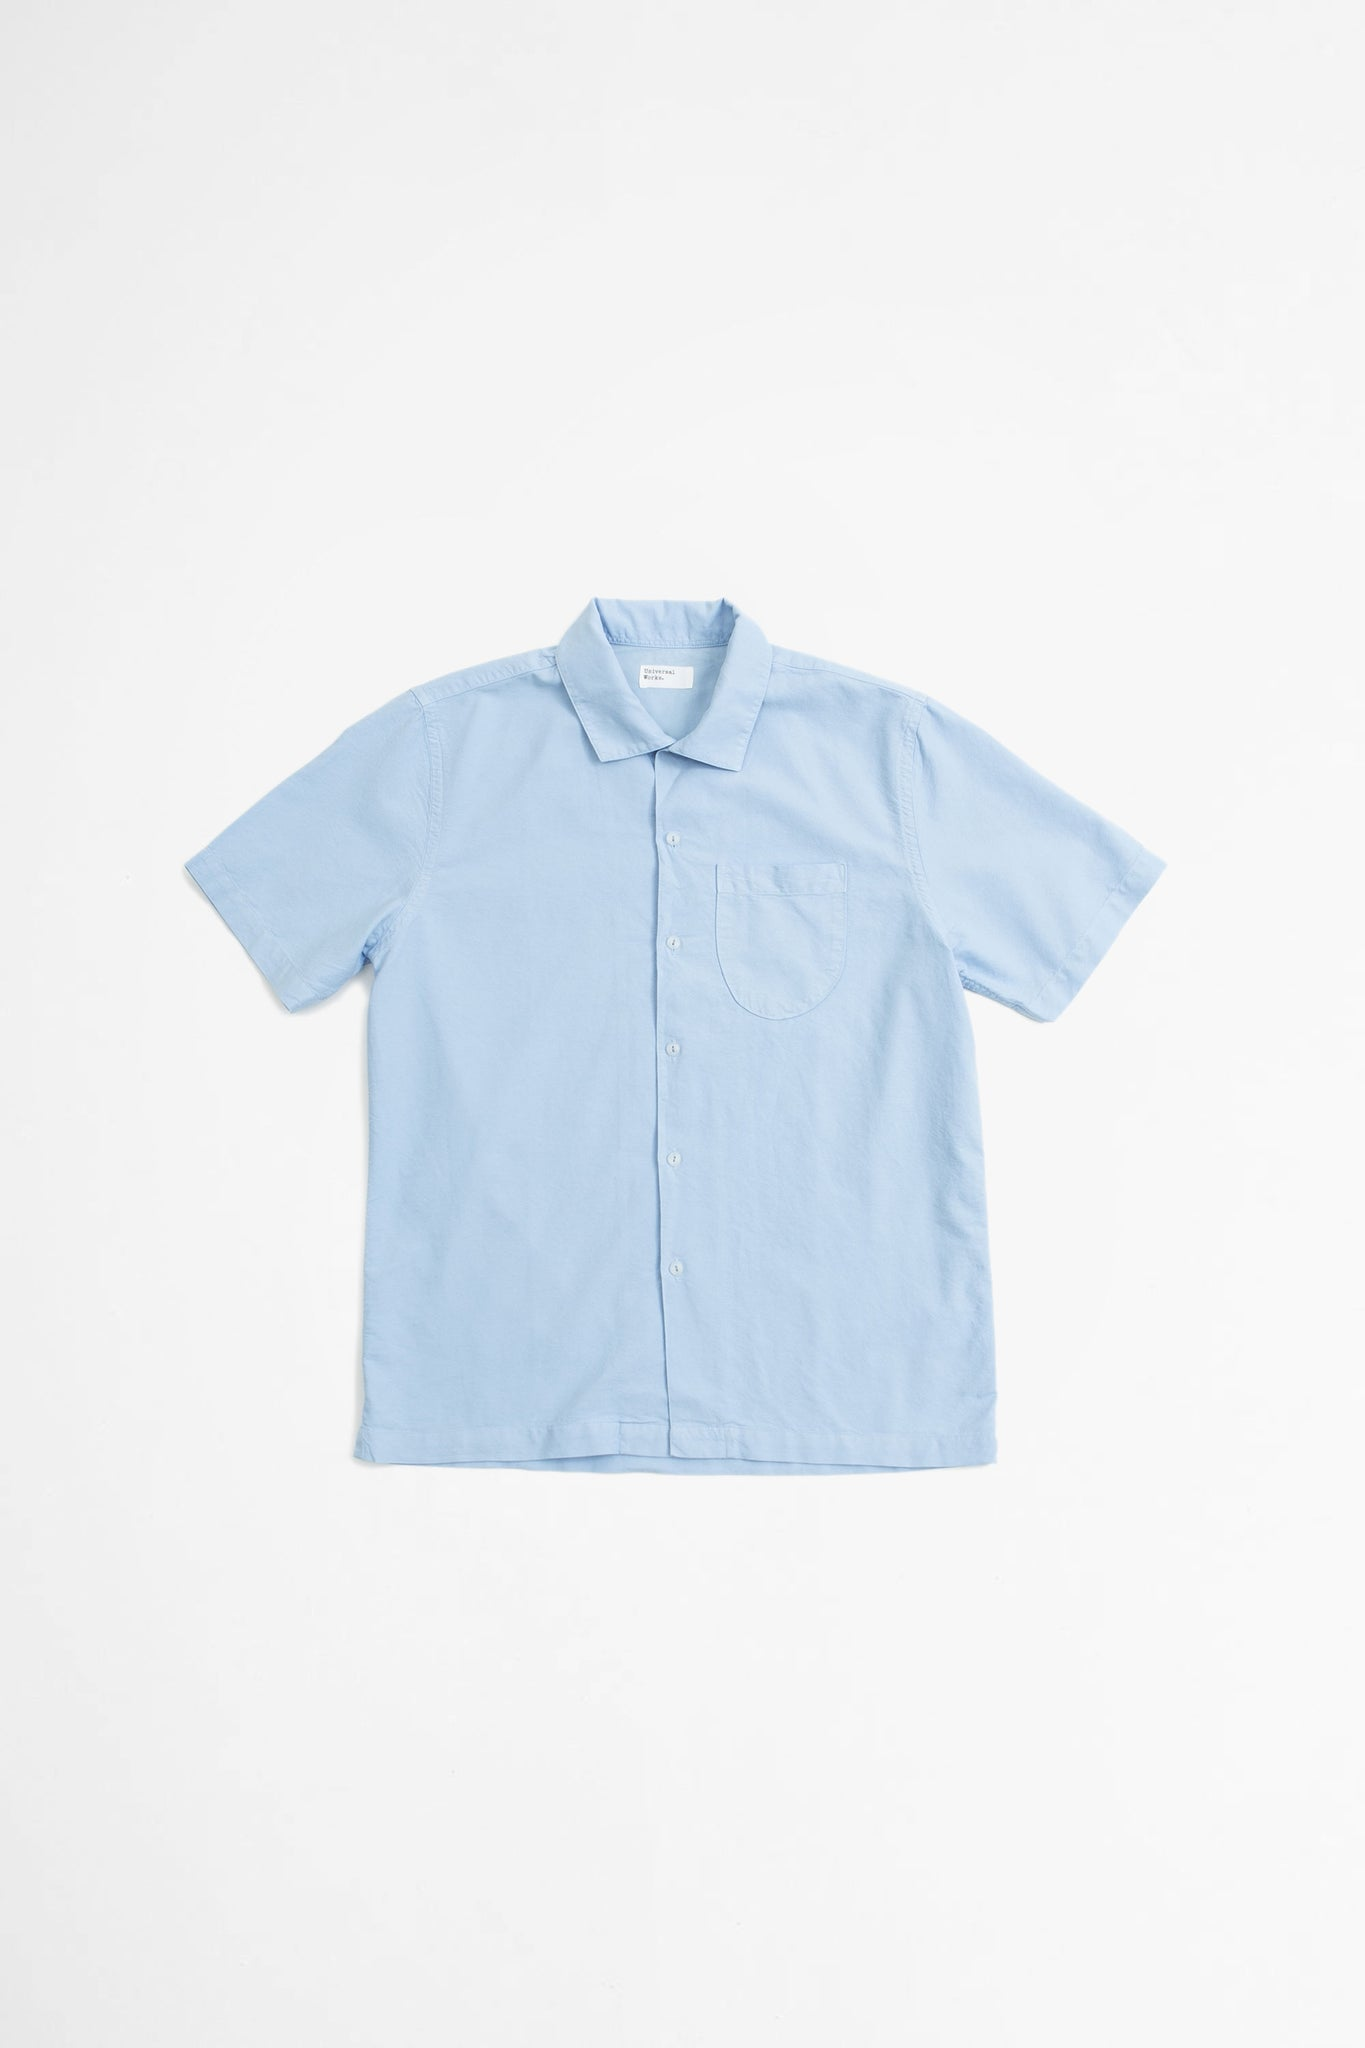 Open collar shirt oxford sky blue